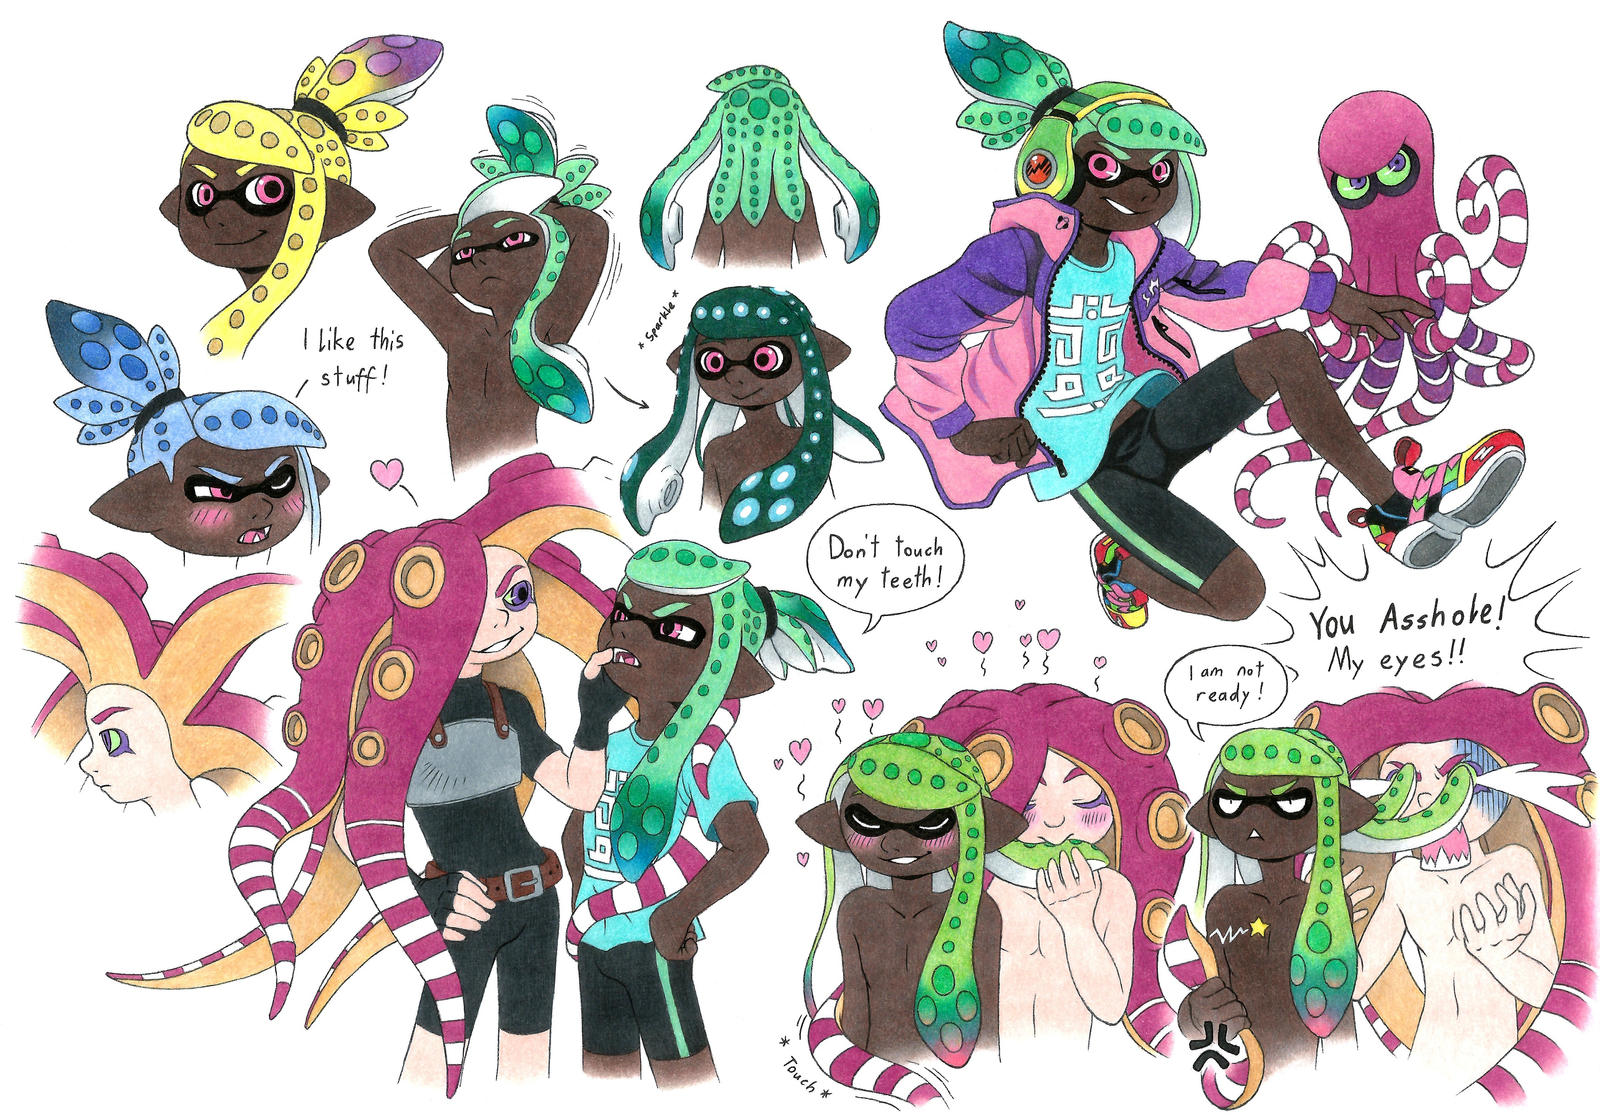 Splatoon OC by Megaloceros-Urhirsch on DeviantArt